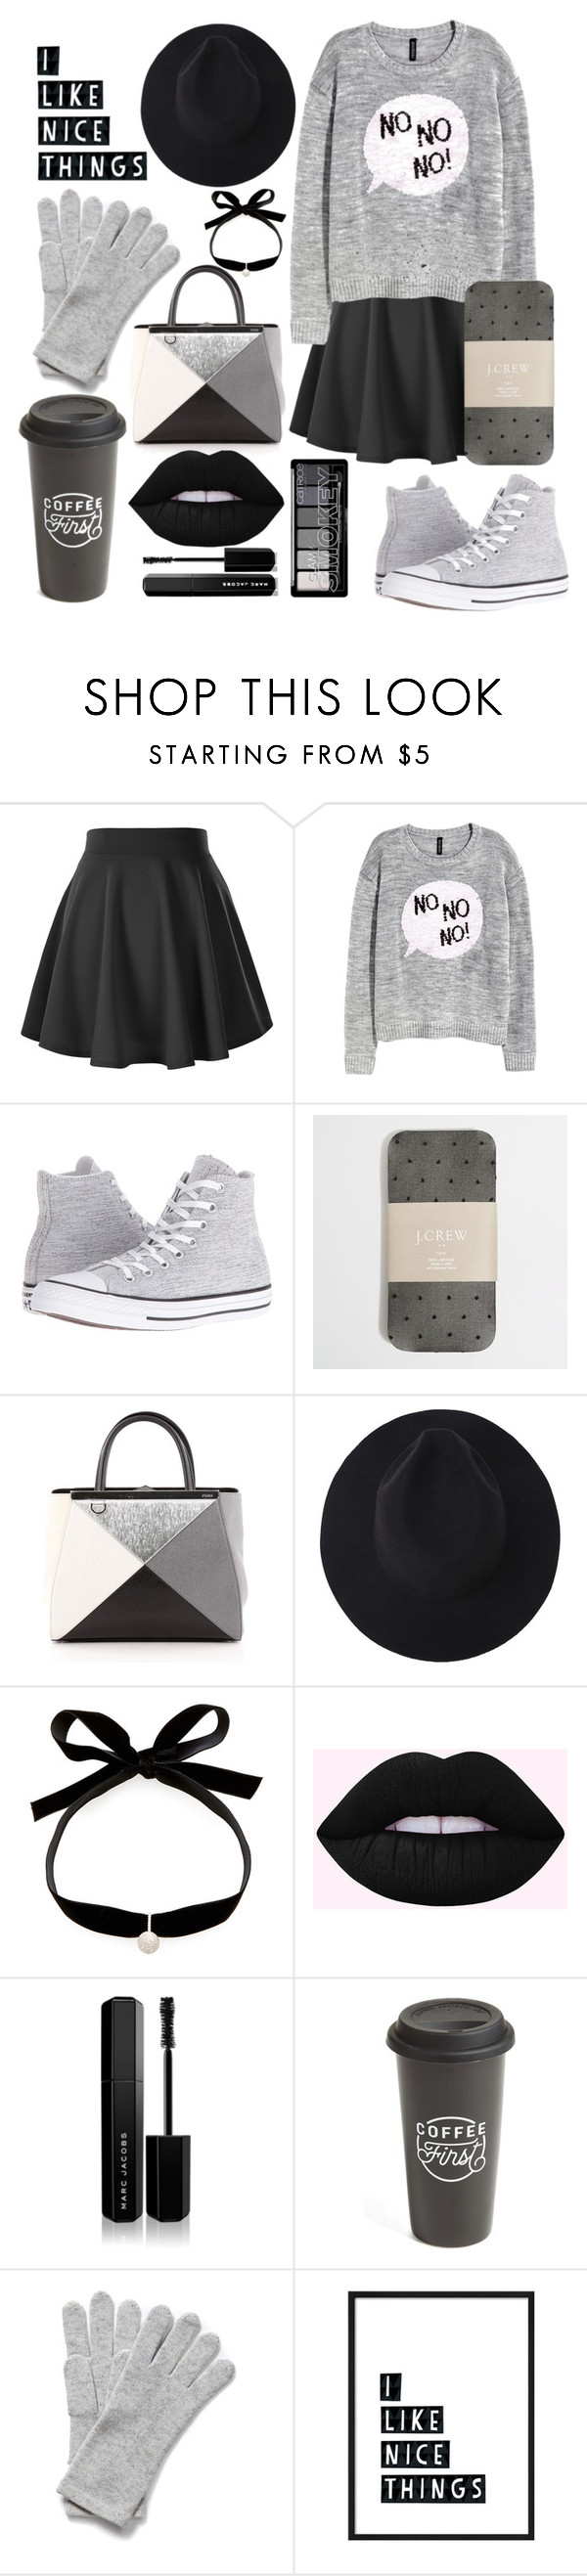 """Cold and Gray"" by kaylee-farthing ❤ liked on Polyvore featuring Converse, J.Crew, Fendi, Mateo, Marc Jacobs and The Created Co."